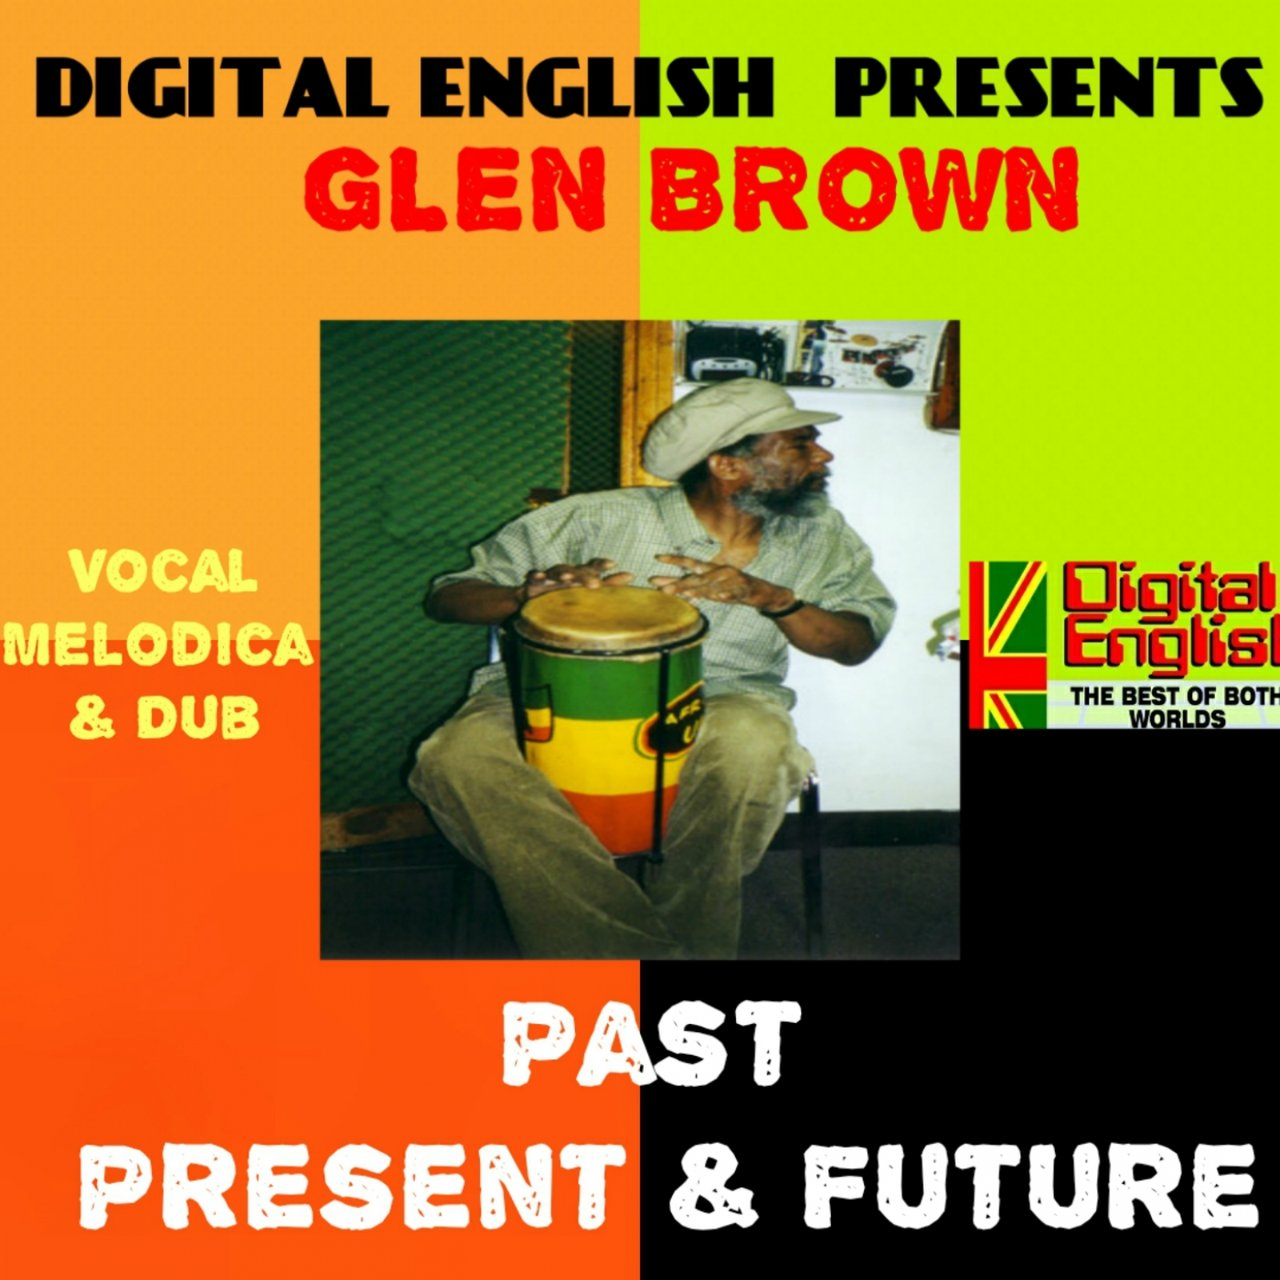 Digital English Presents Glen Brown: Past, Present & Future